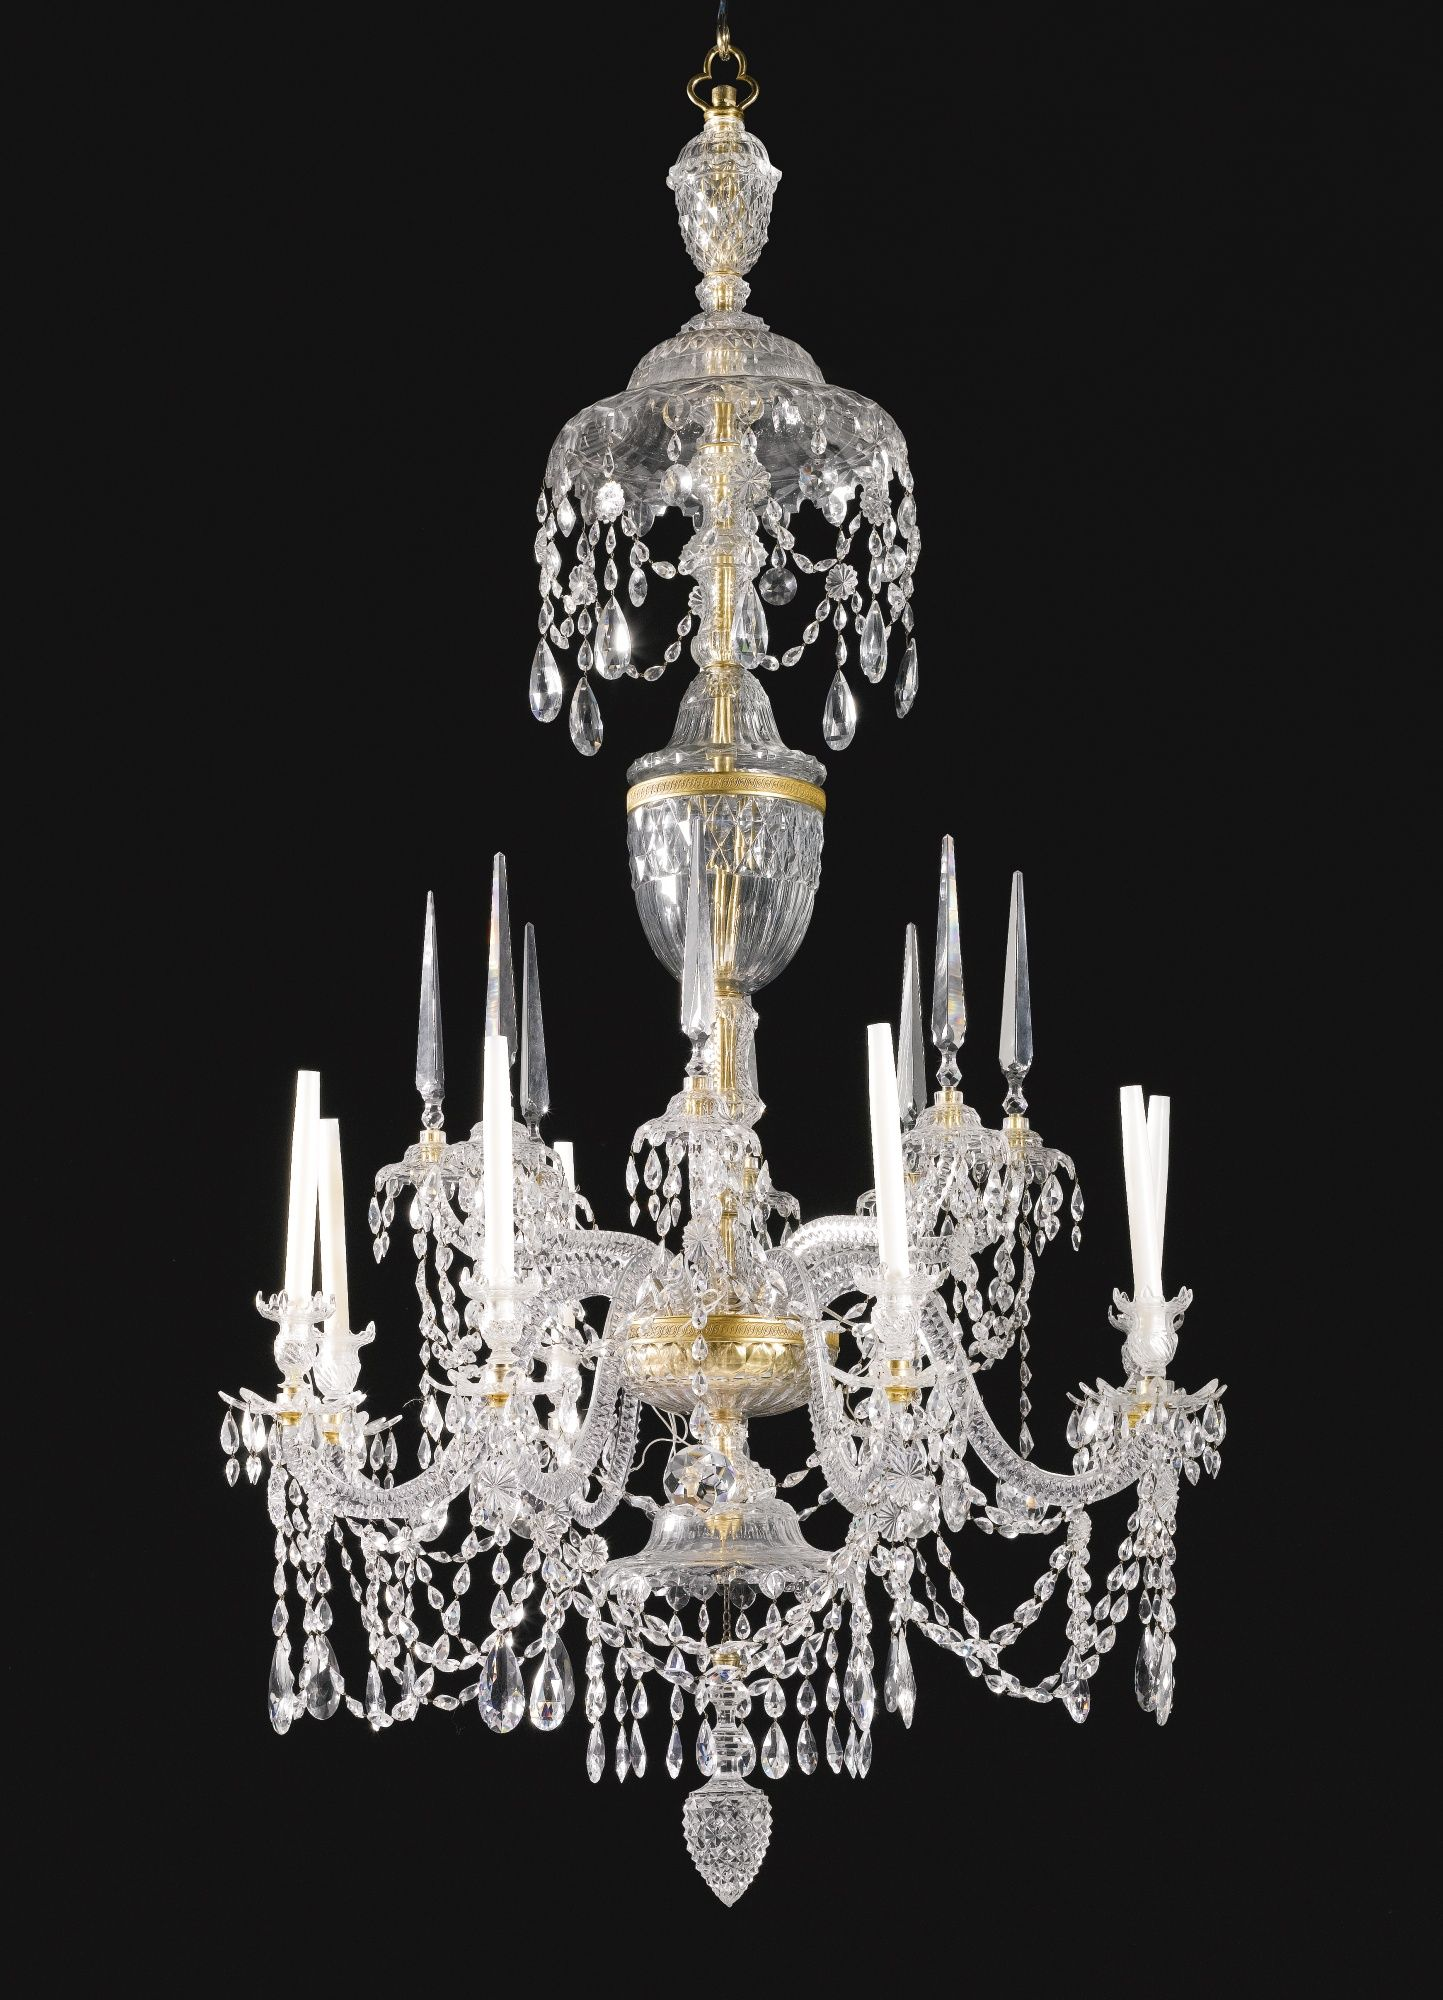 A George III cut glass eight light chandelier circa 1770 in the